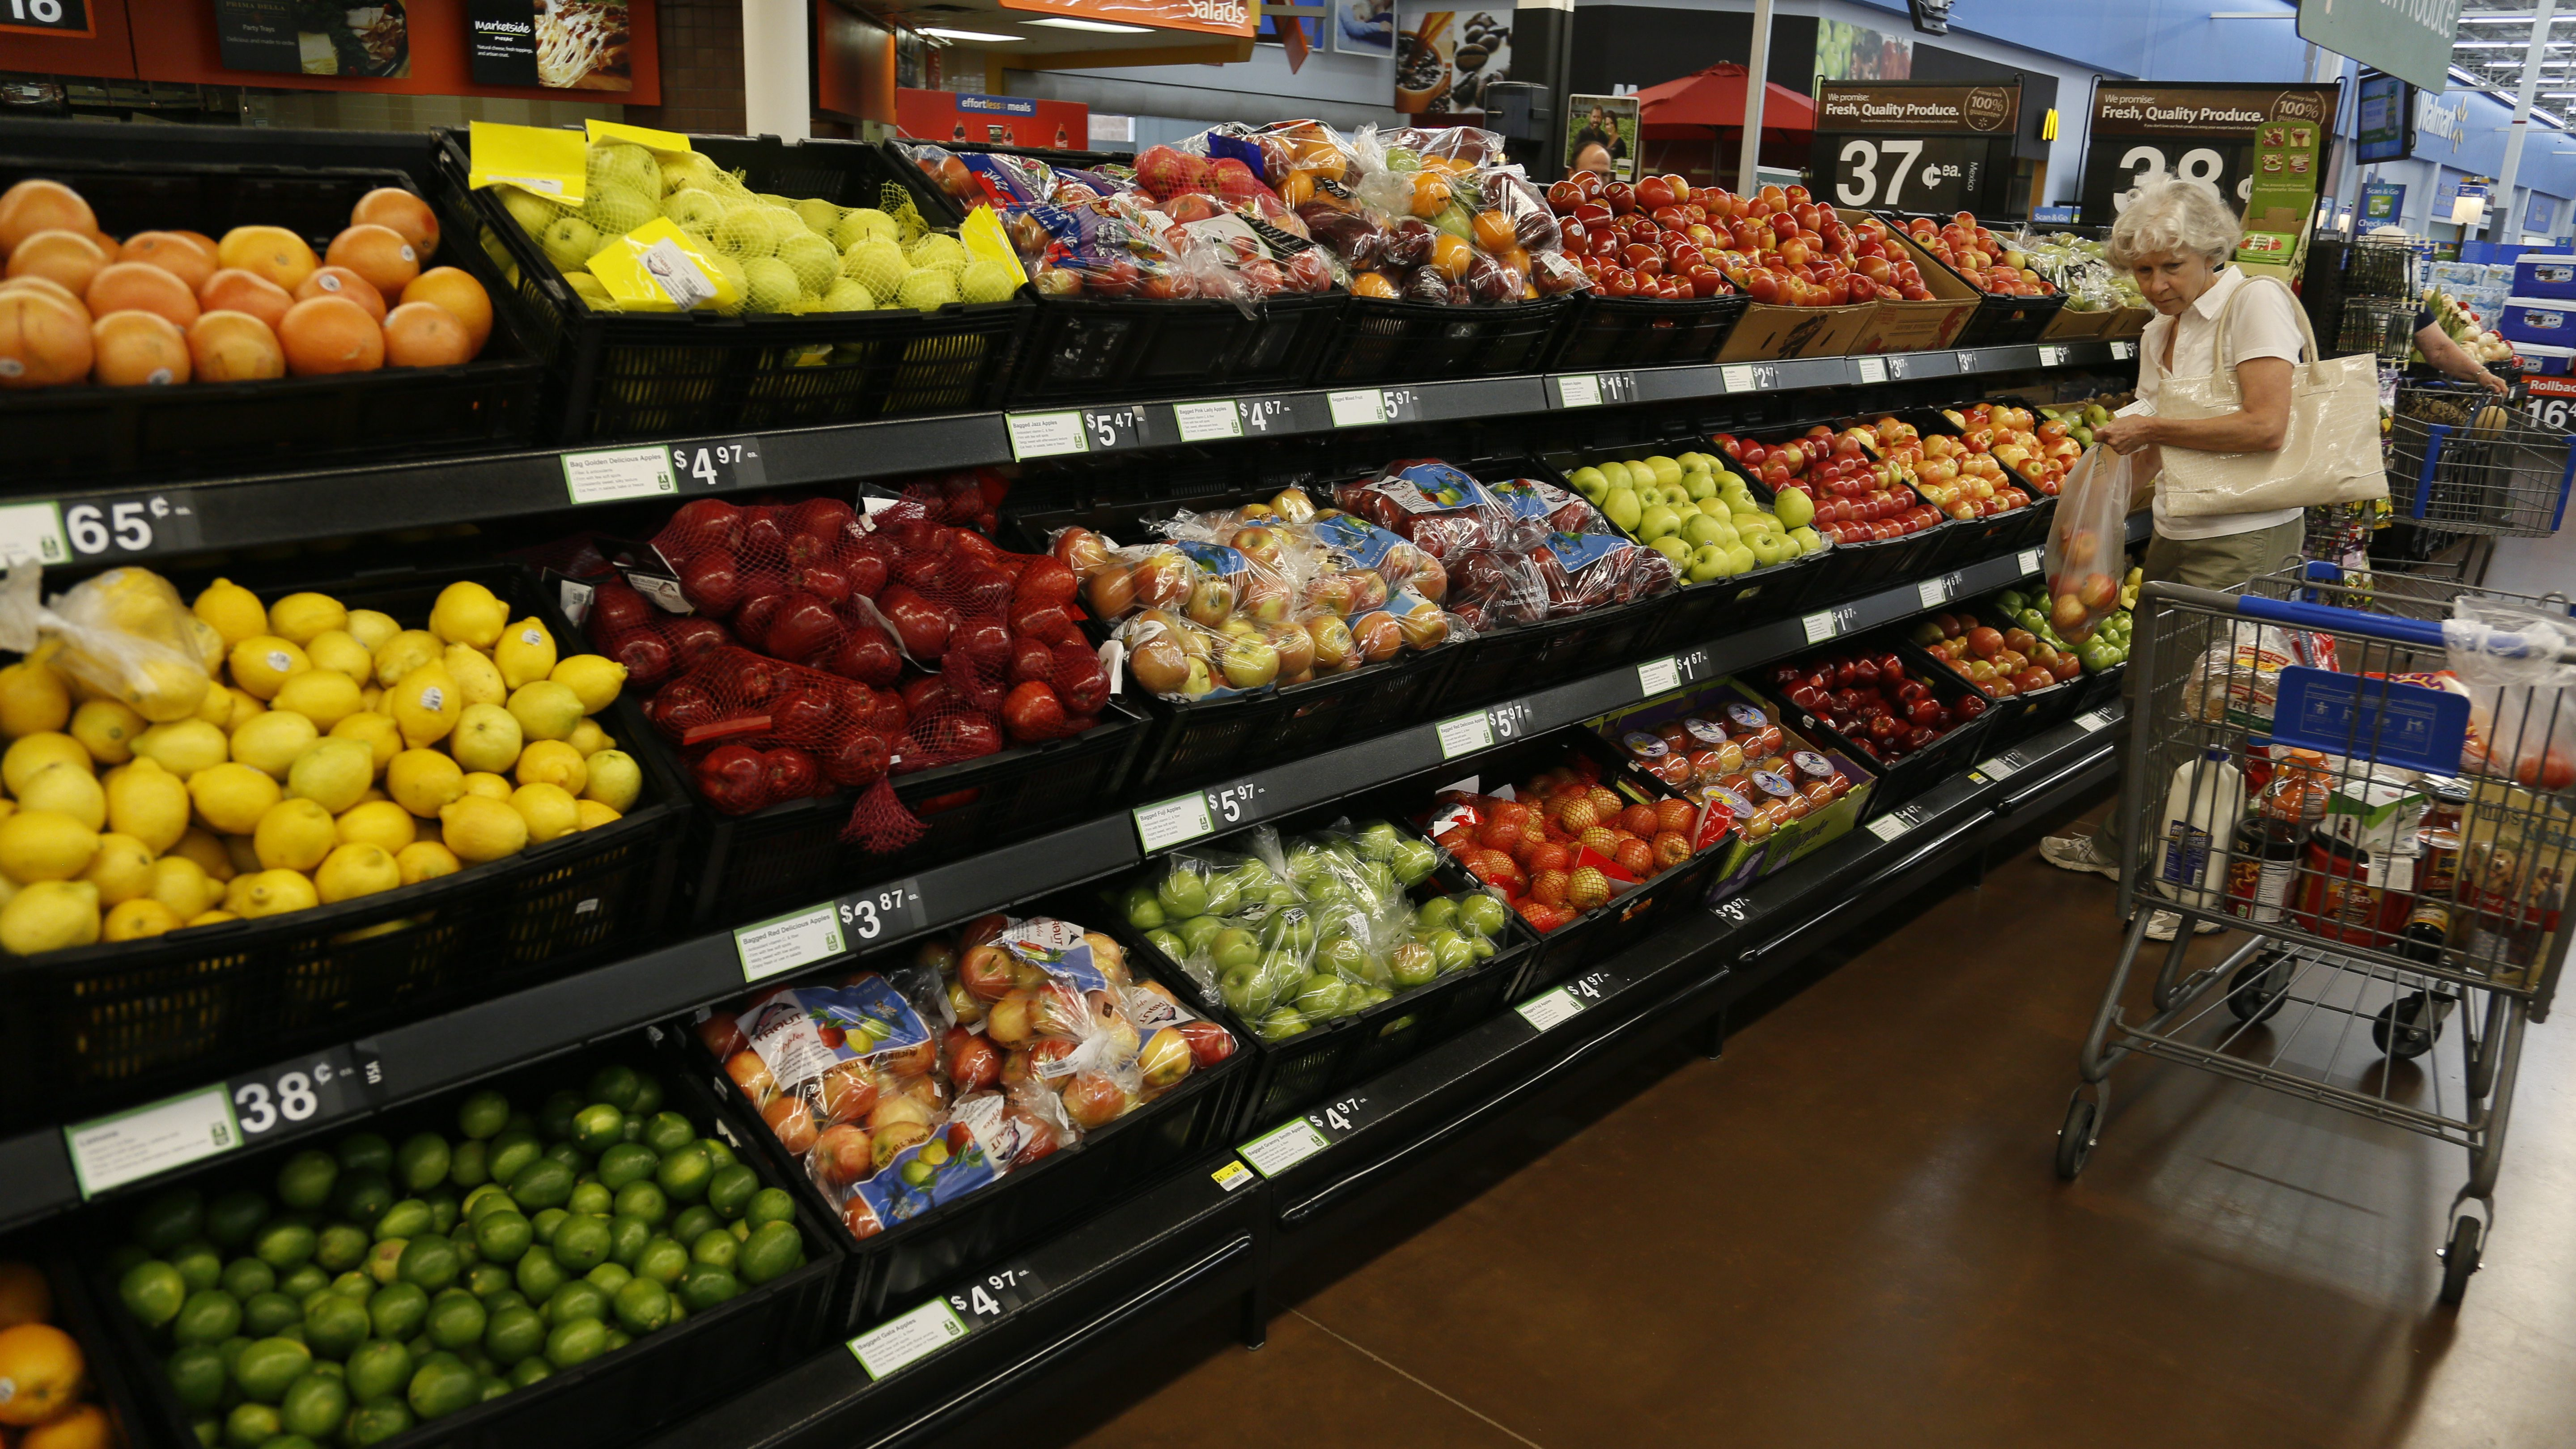 The fresh produce section is seen at a Walmart Supercenter in Rogers, Arkansas June 6, 2013.       (UNITED STATES  - Tags: BUSINESS)   - TB3E97Q1BXATT